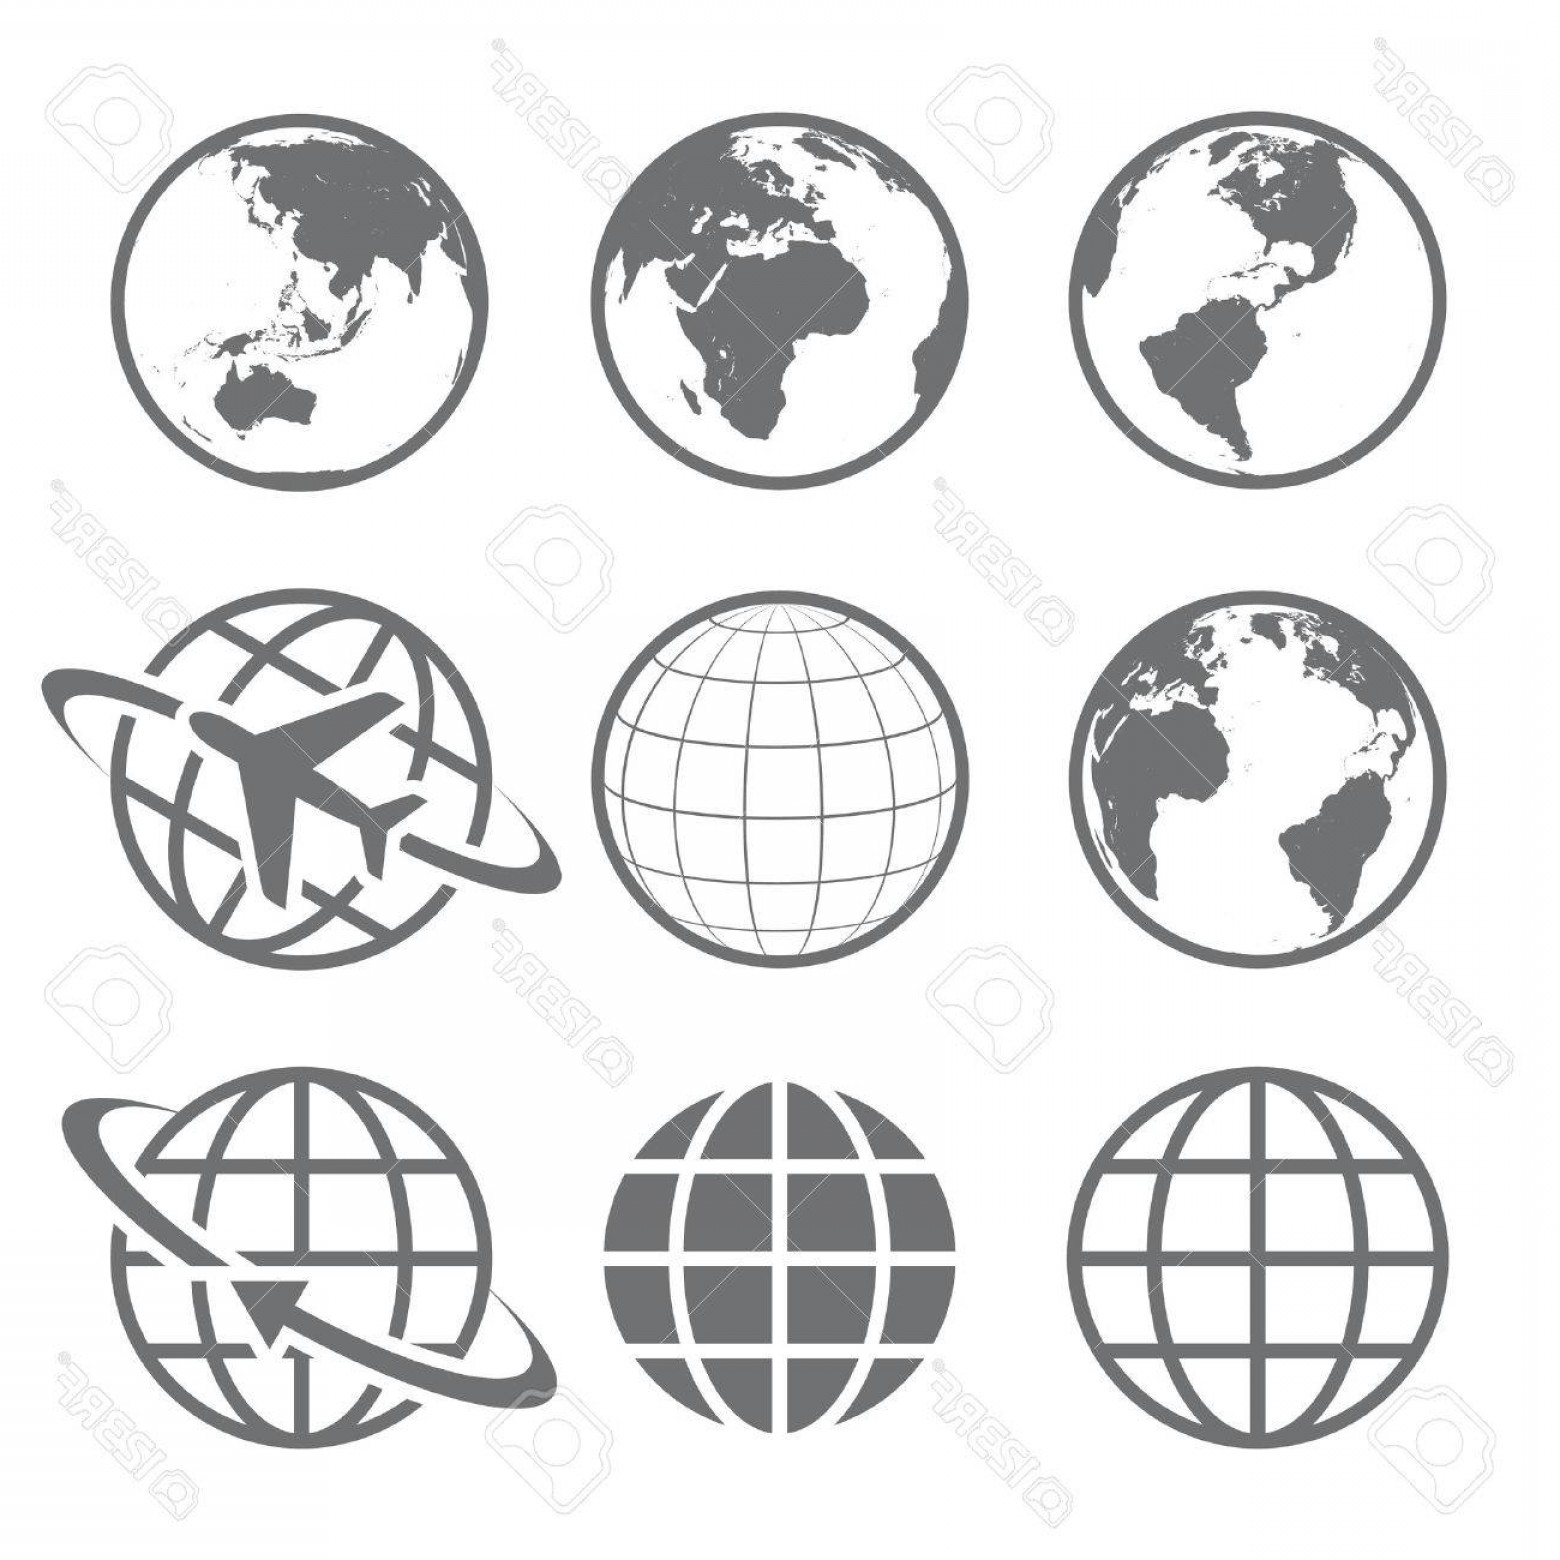 World Icon Vector Simple: Photostock Vector Set Of Nine Simple Earth Globe Icons Vector File Is Layered